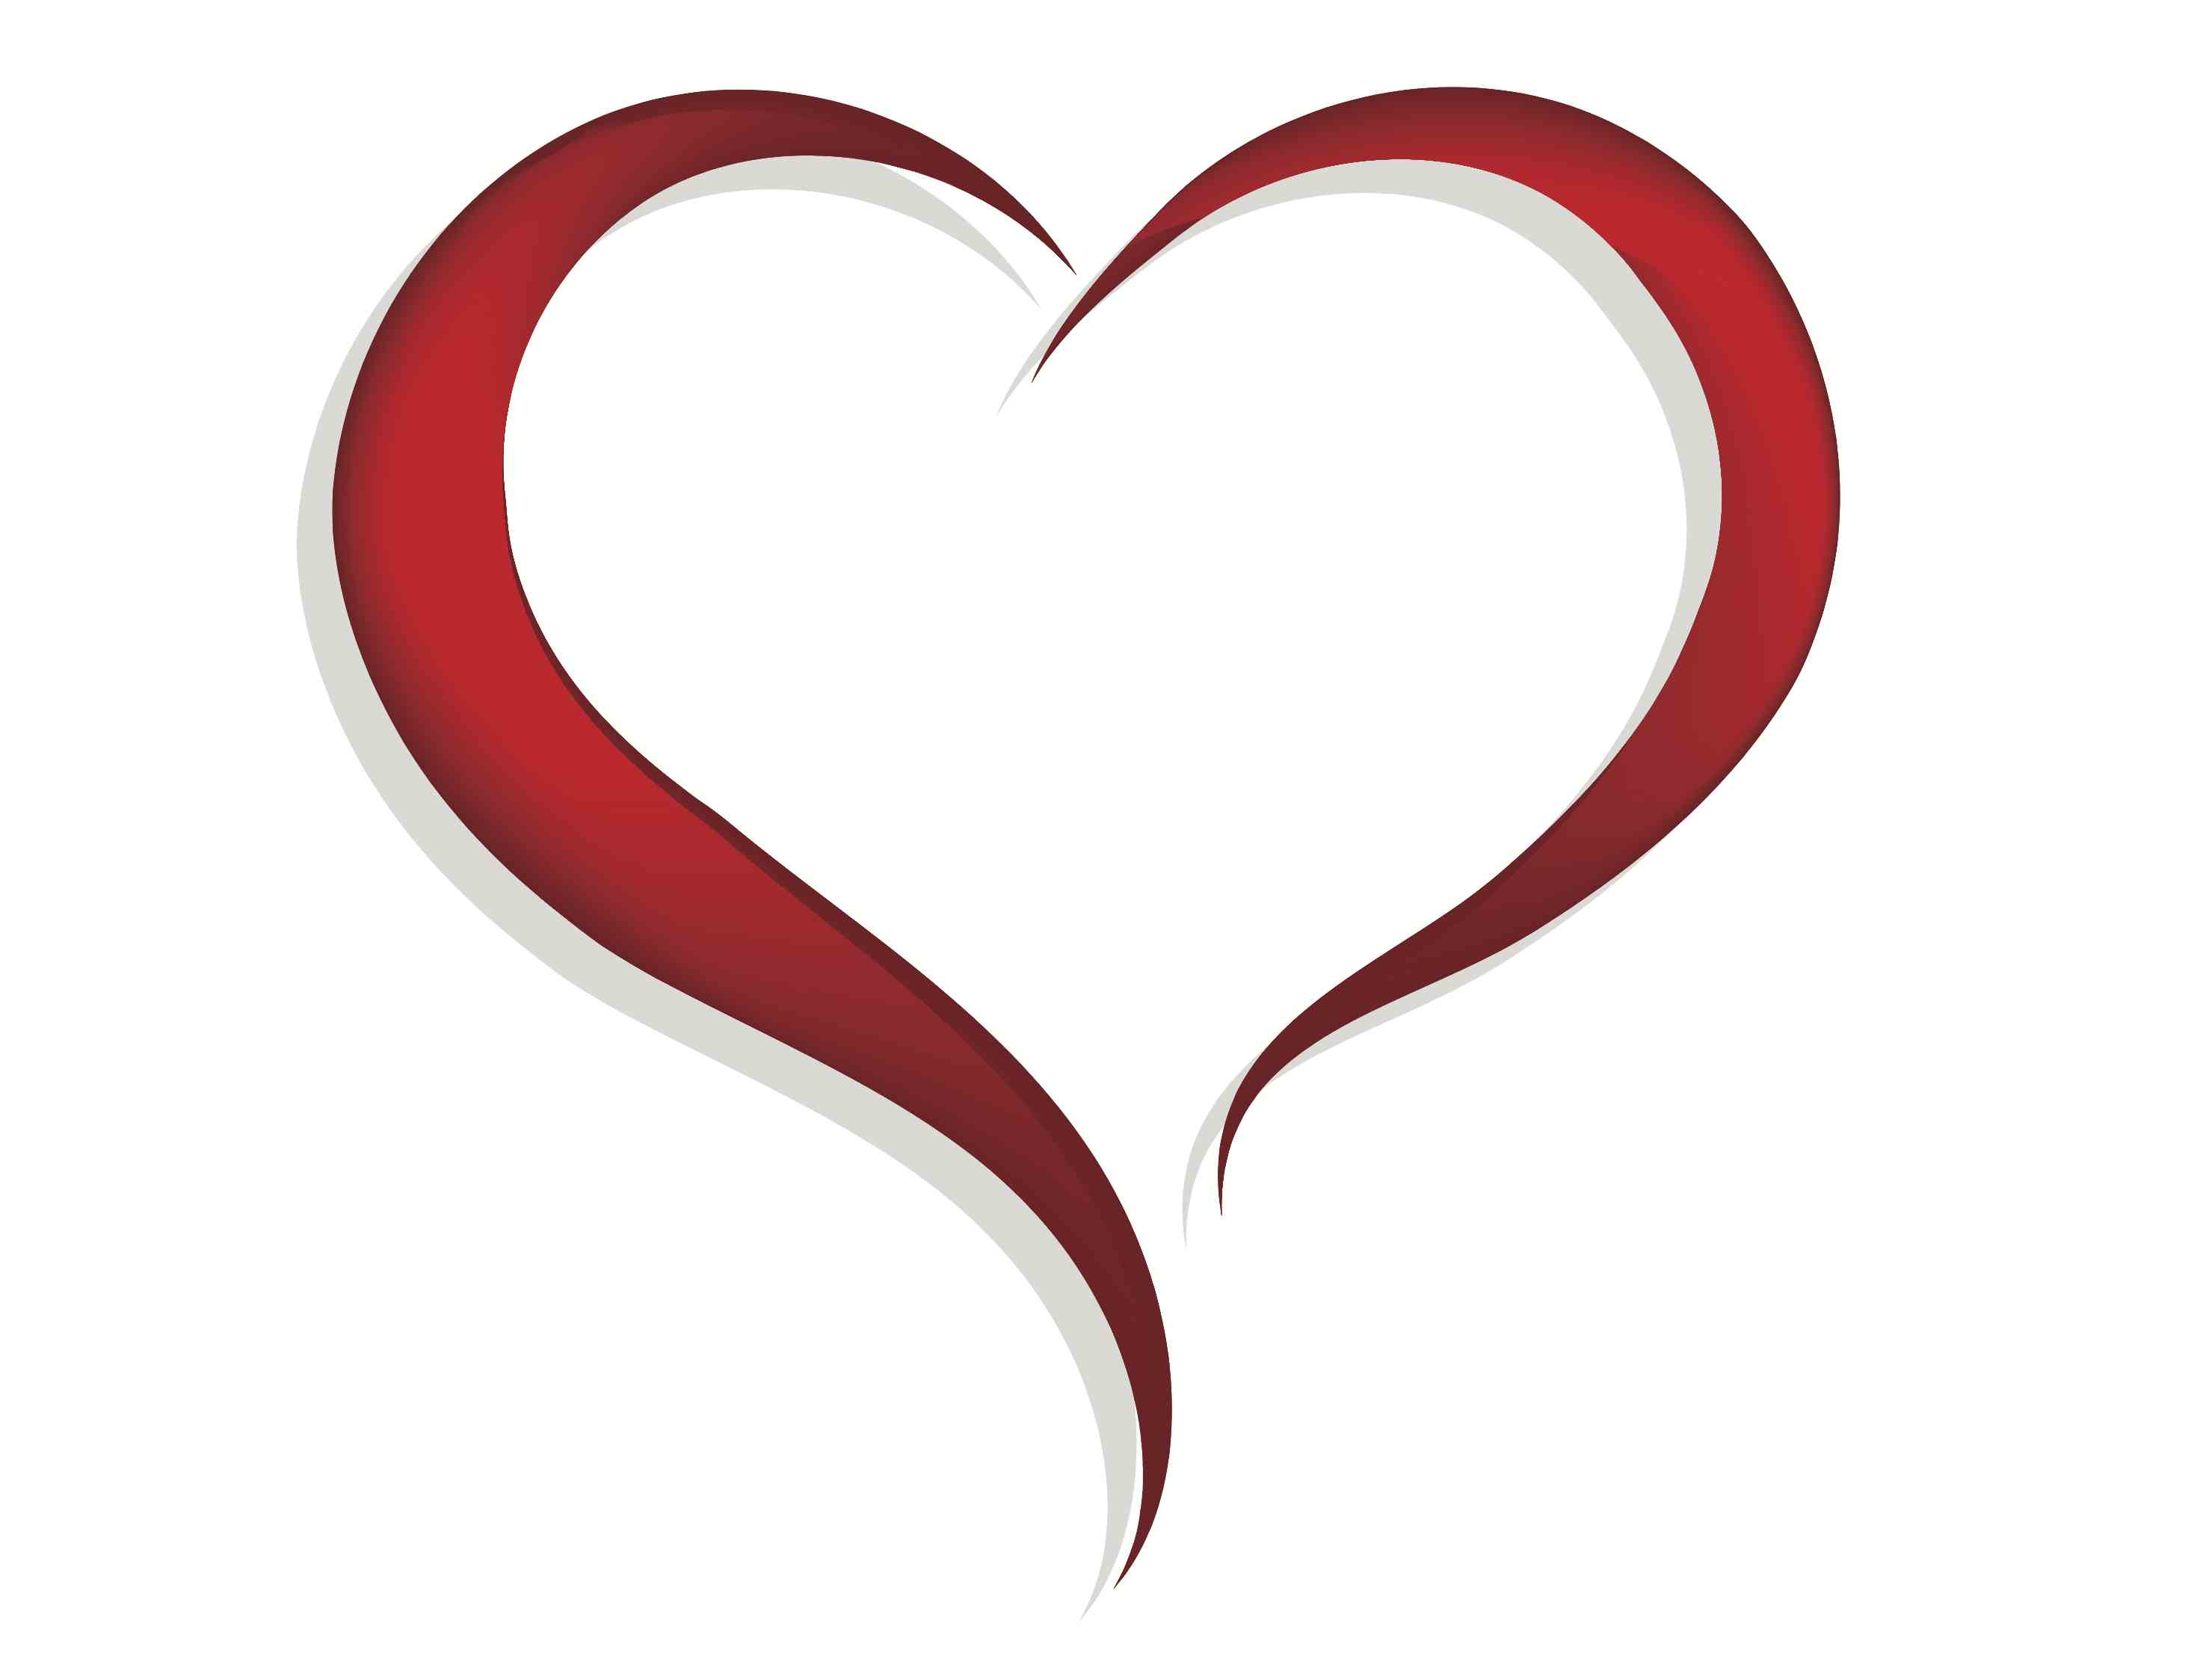 Free transparent heart download. Hearts clipart icon